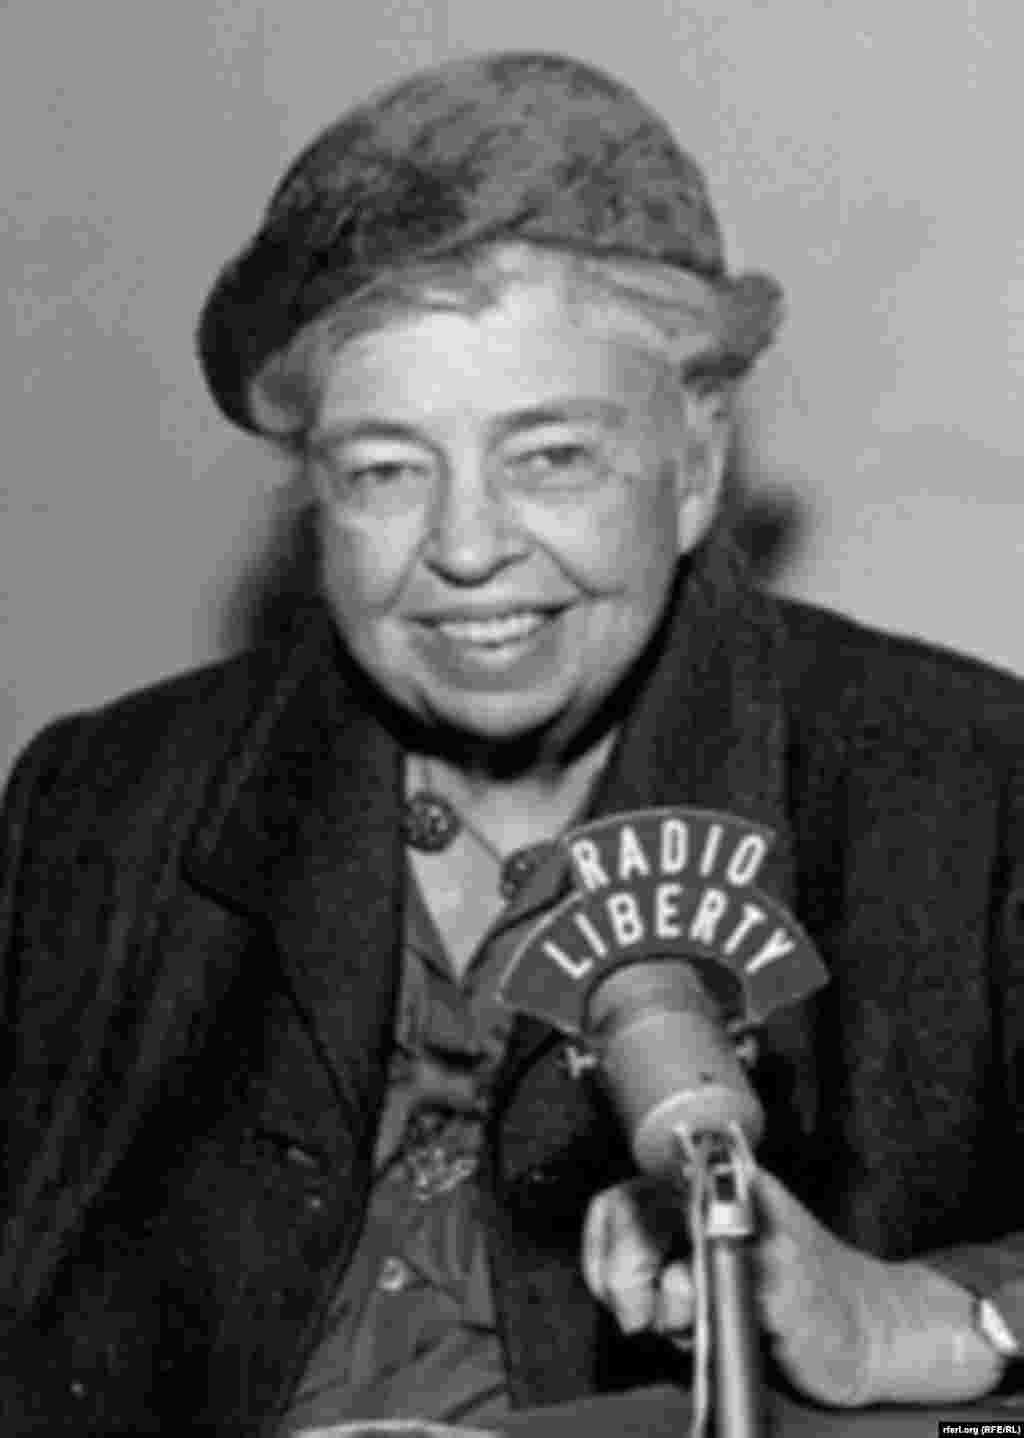 Former U.S. First Lady and Human Rights Champion Eleanor Roosevelt sits down for an interview in the late 1950s with Radio Liberty.